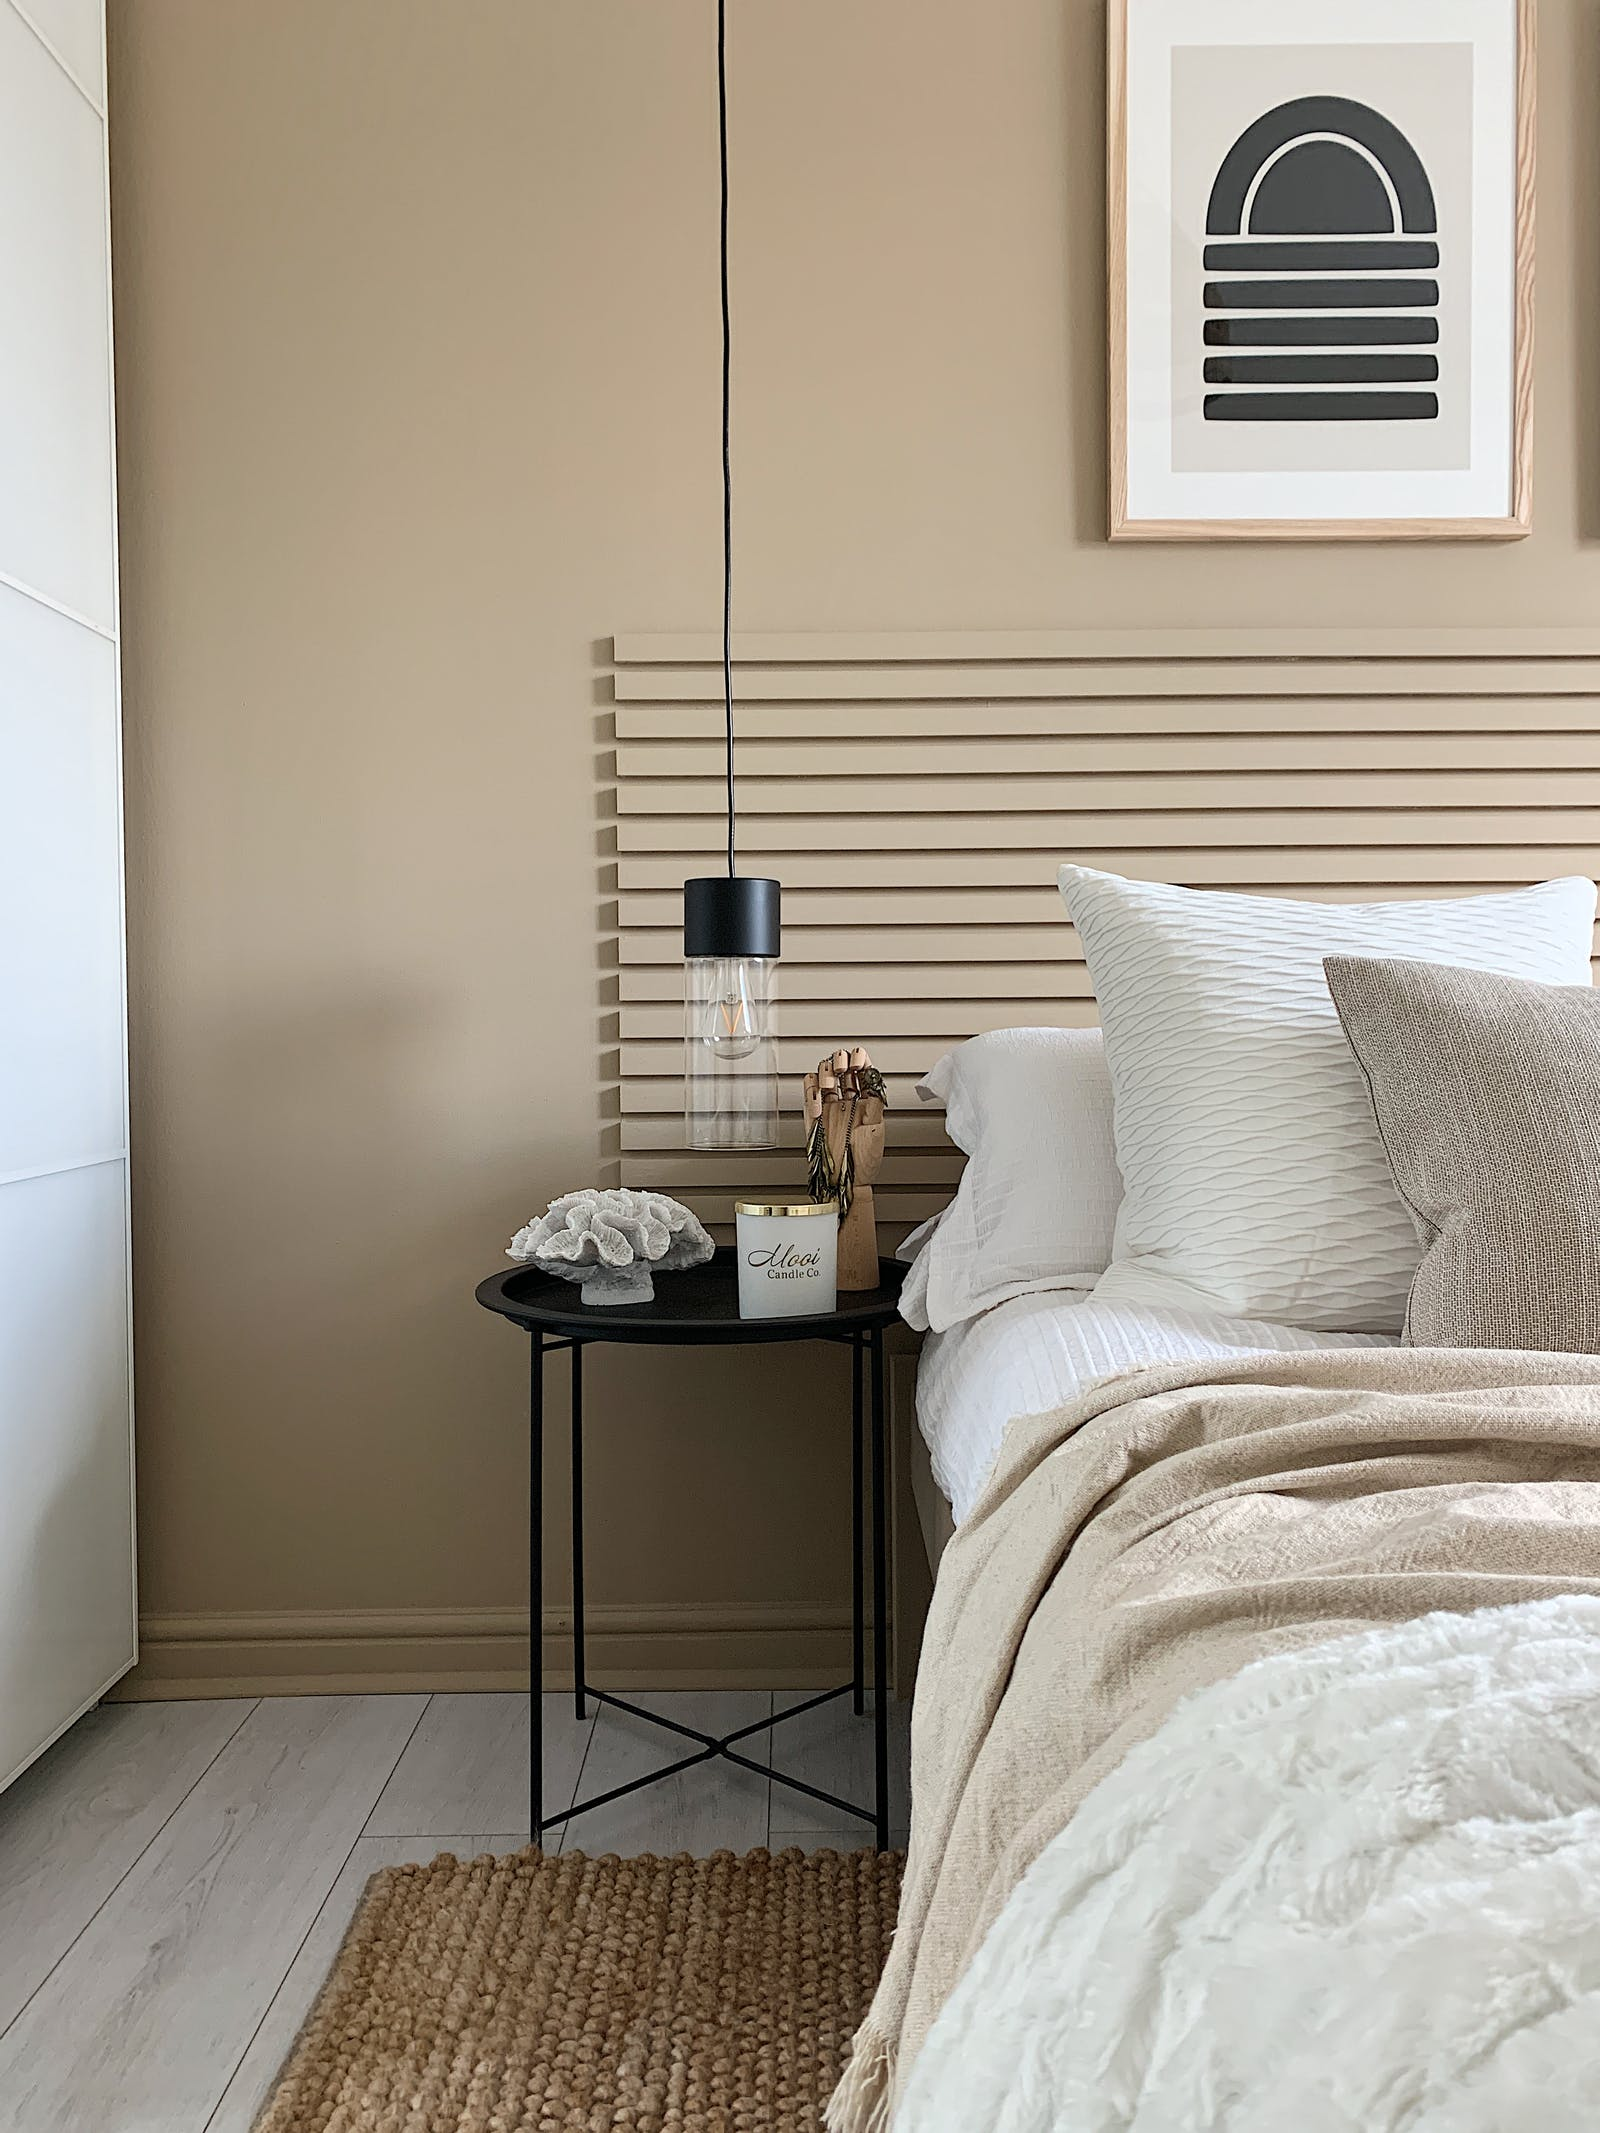 Black bedside table against wall painted in Lick Beige 02